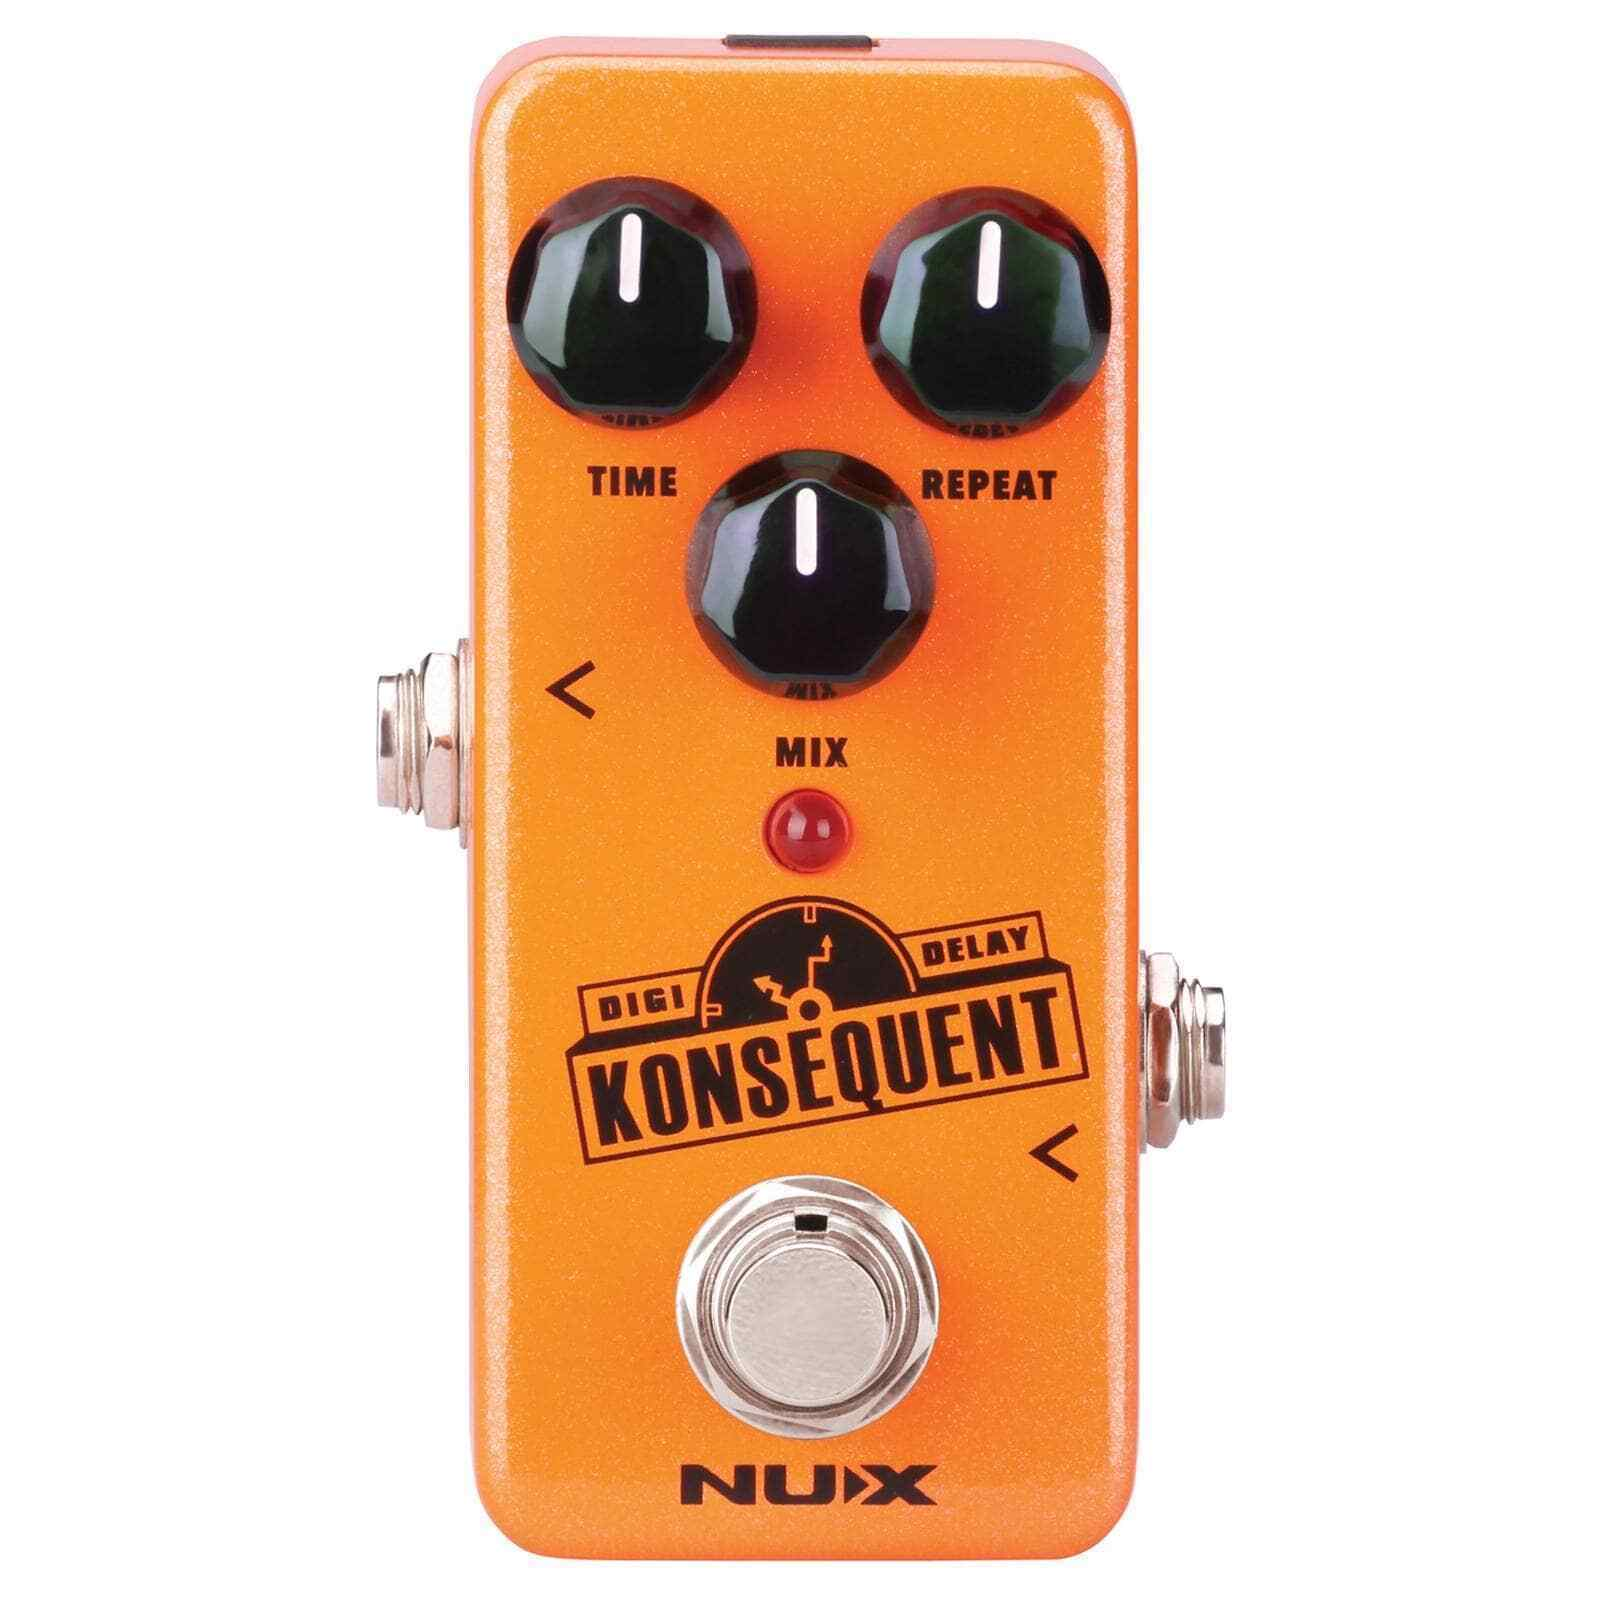 NUX Konsequent Digital Delay Pedal (RRp )